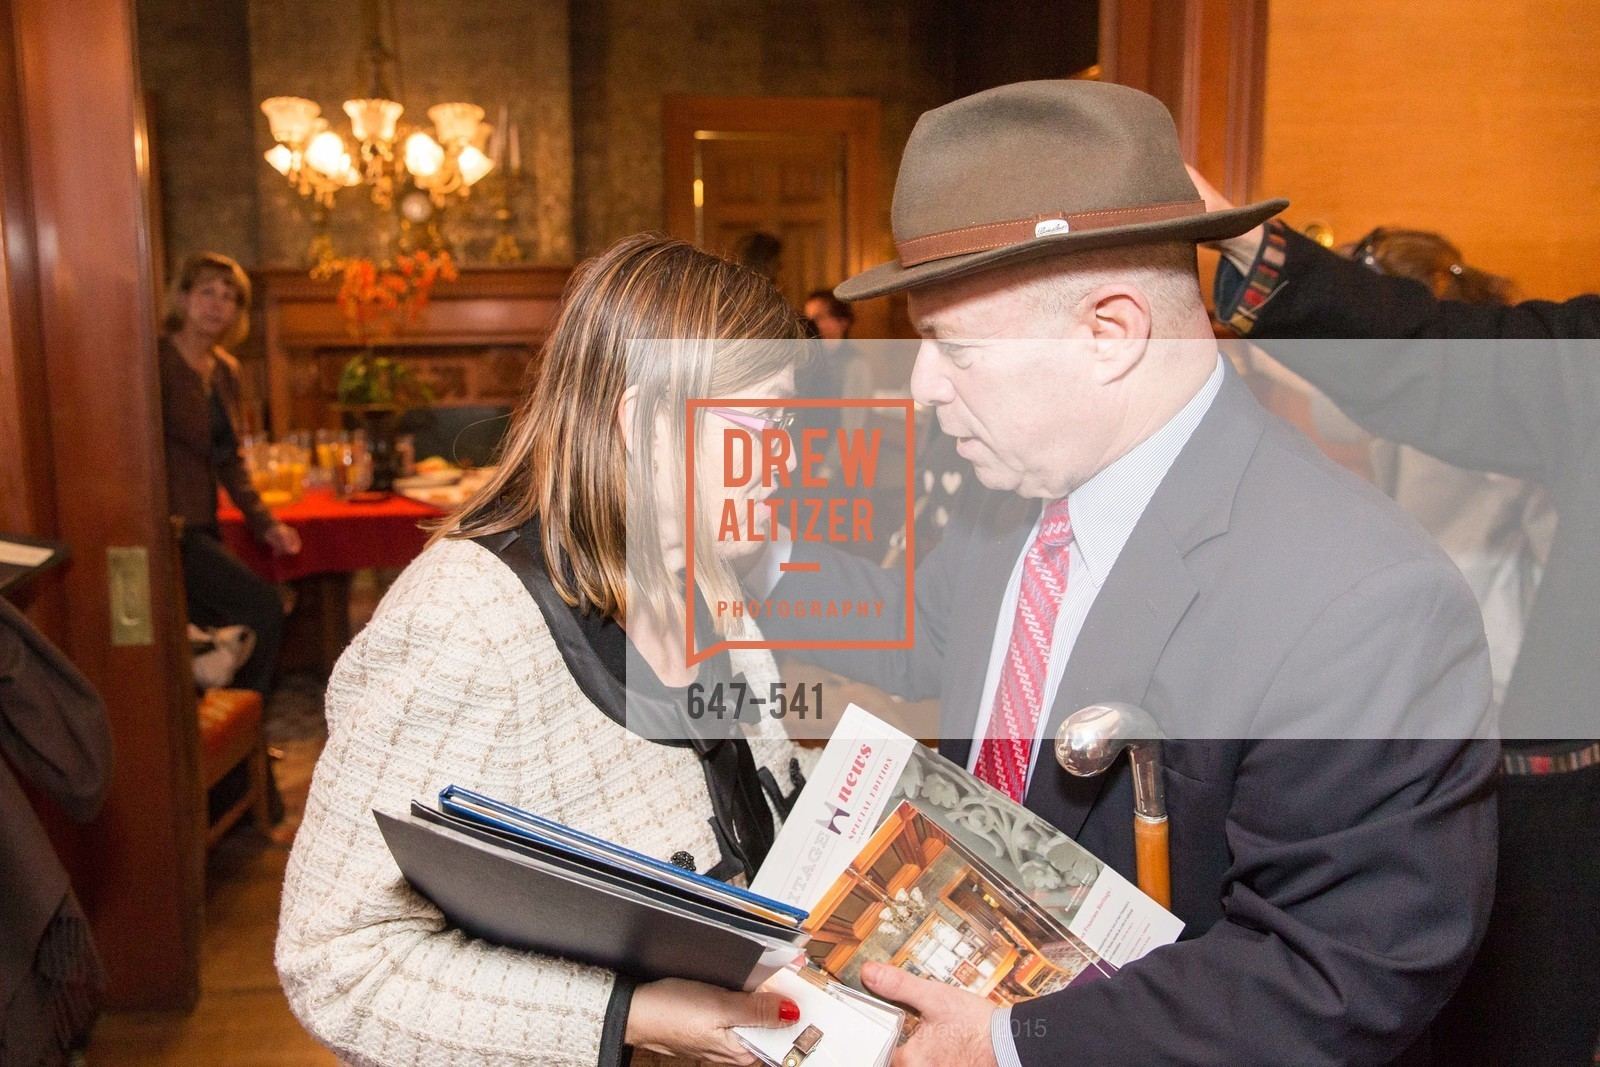 Carolyn Squeri, John Rothmann, Ceremony Inaugurating the Campaign for San Francisco Heritage & Haas-Lilienthal House, Haas-Lilienthal House. 2007 Franklin Street, November 18th, 2015,Drew Altizer, Drew Altizer Photography, full-service event agency, private events, San Francisco photographer, photographer California